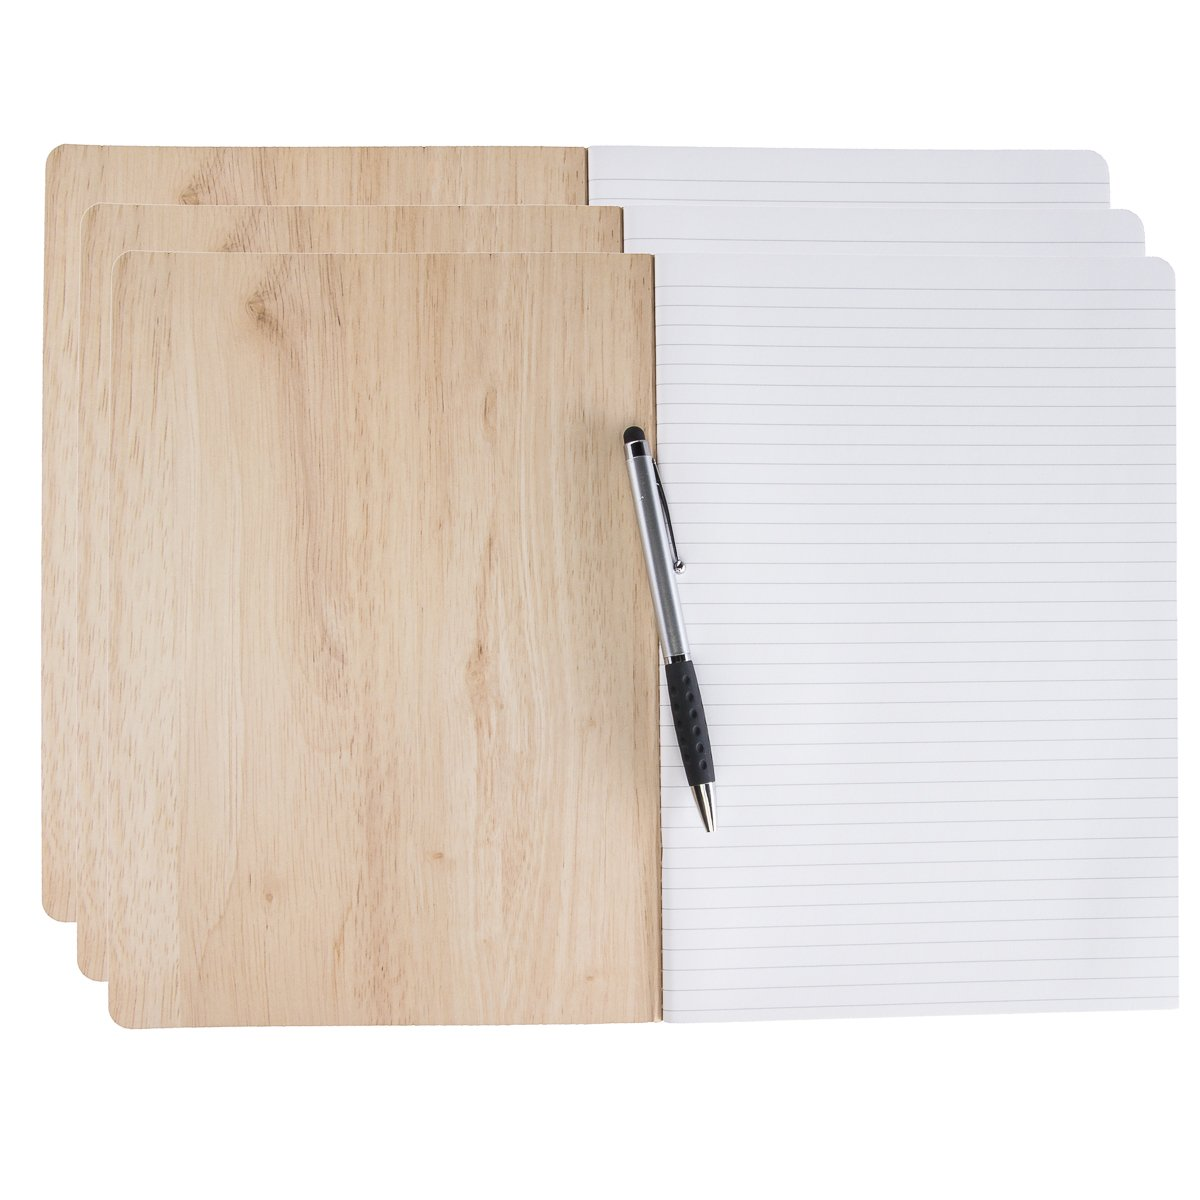 """George Stanley (3 Pack) Journals to Write in 10 x 7"""" Notebook Soft Cover Ruled 120 Lined Pages Bulk by George Stanley (Image #2)"""